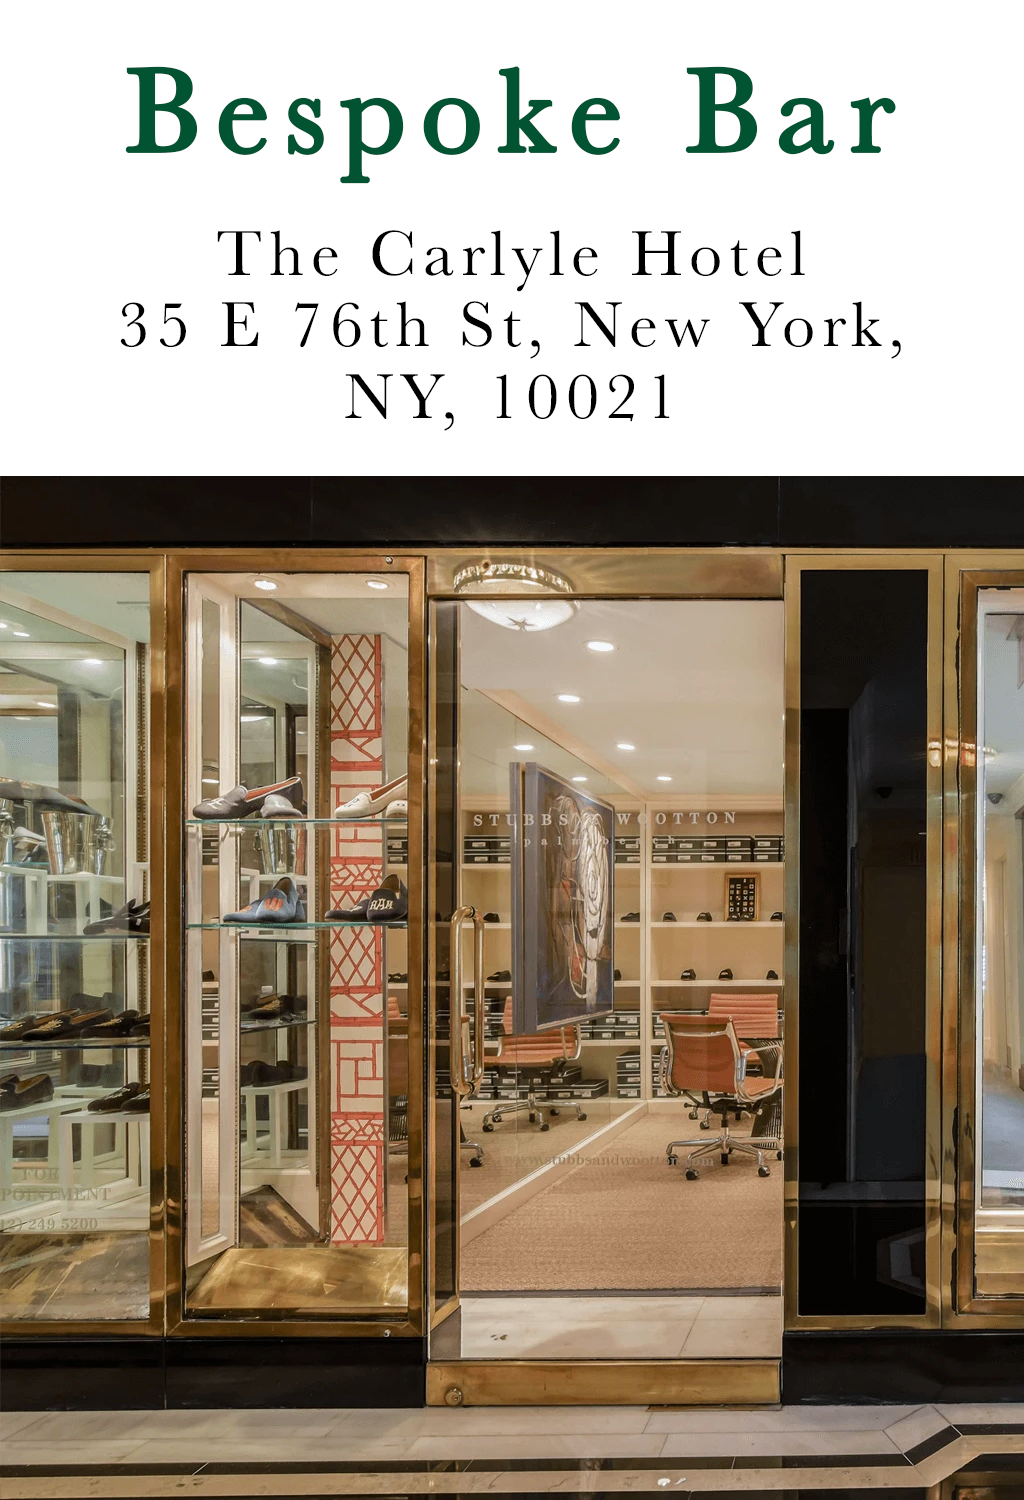 Click for directions - Bespoke Bar - The Carlyle, A Rosewood Hotel 35 E 76th St New York, NY 10021